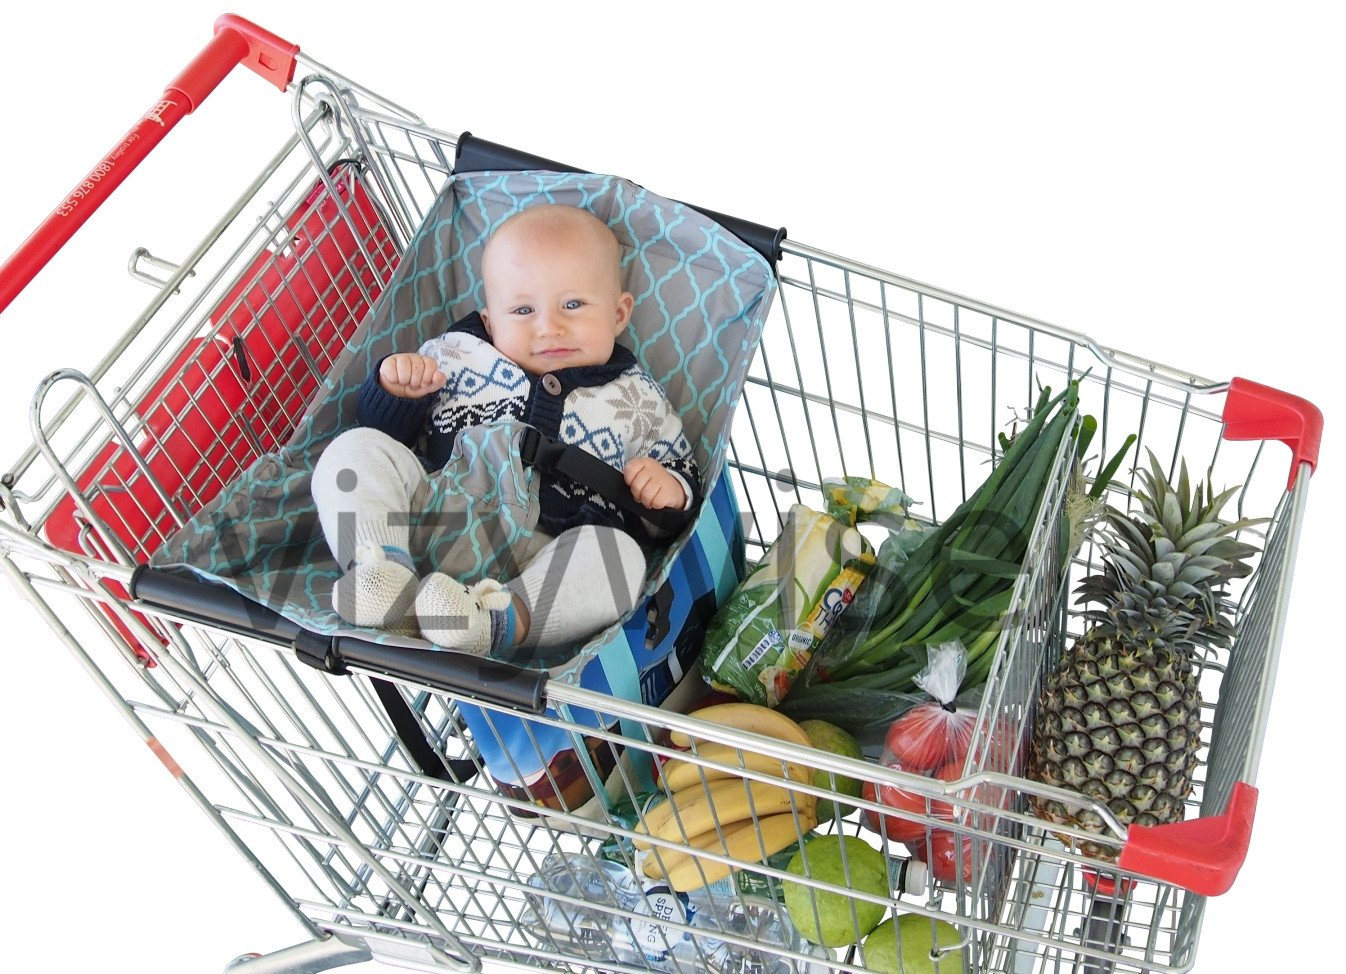 Baby Shopping Cart Hammock Supermarket Trolley Cover sling   0-6 months age vizywise